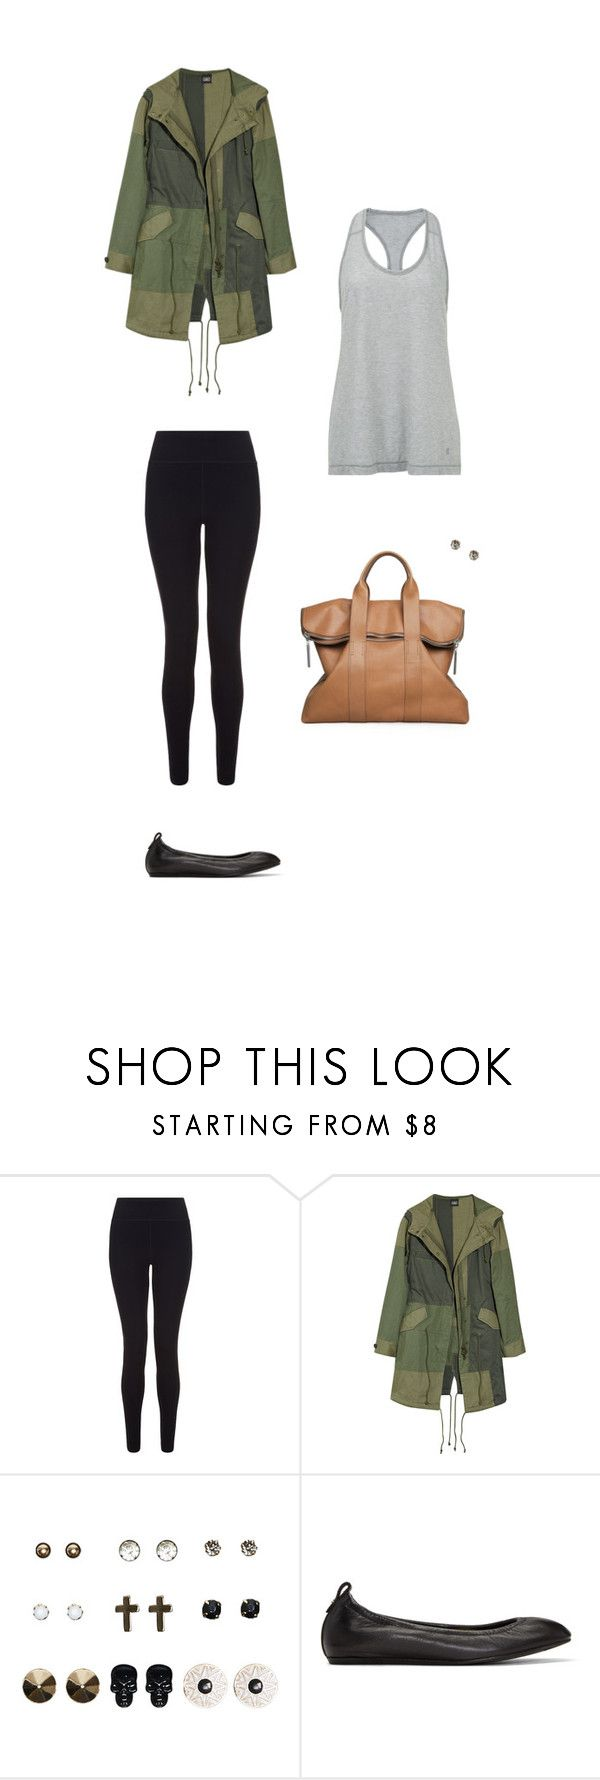 """Patchwork Parka"" by coolchick1630 ❤ liked on Polyvore featuring Sweaty Betty, Edun, 3.1 Phillip Lim, Wet Seal and Lanvin"